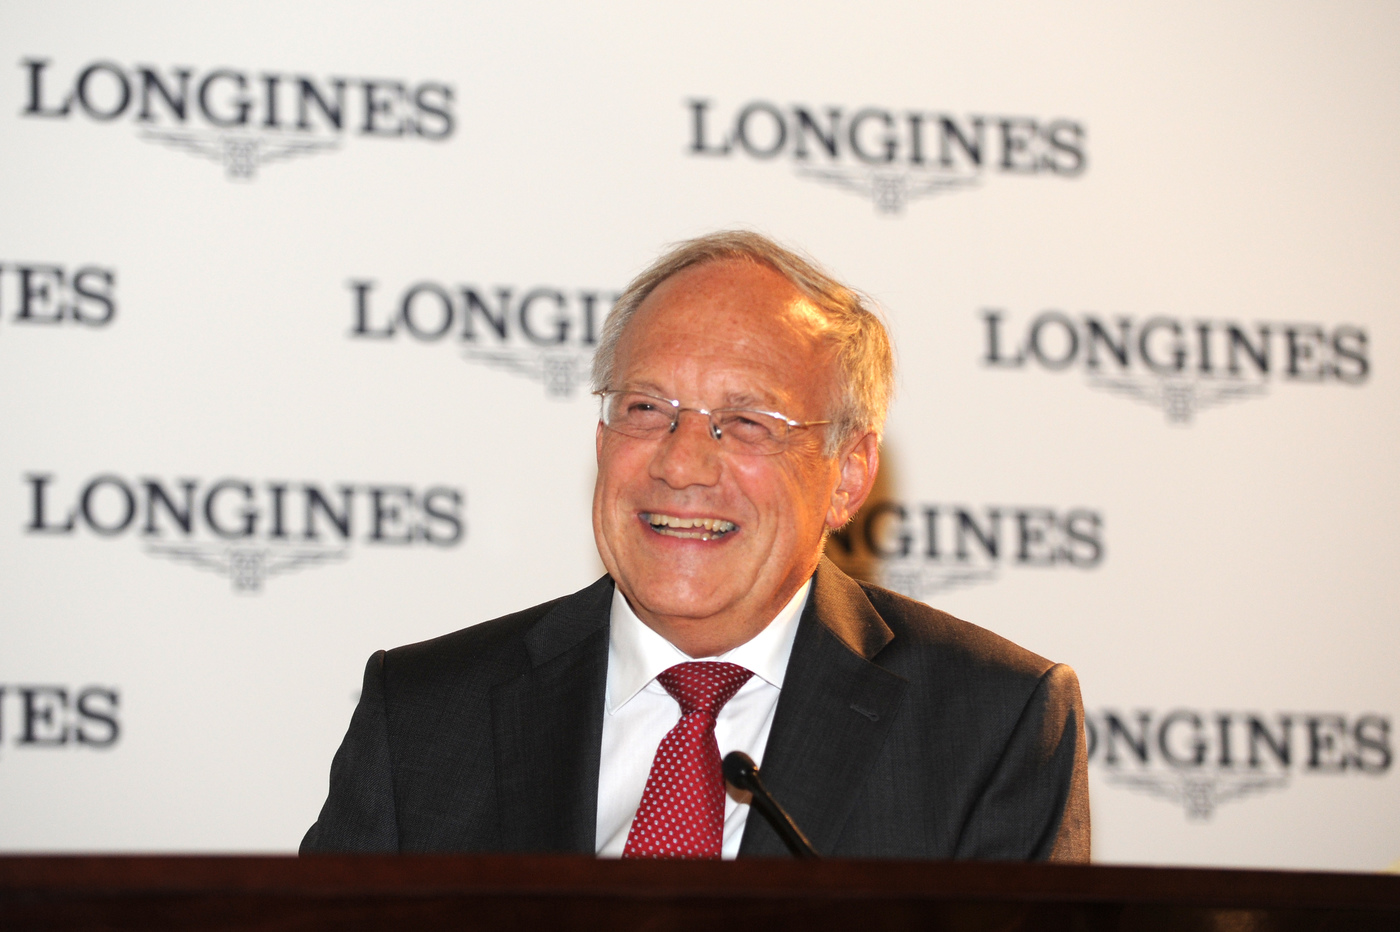 Longines Corporate Event: Bundesrat Johann Schneider-Ammann besichtigt Longines in Saint-Imier 2